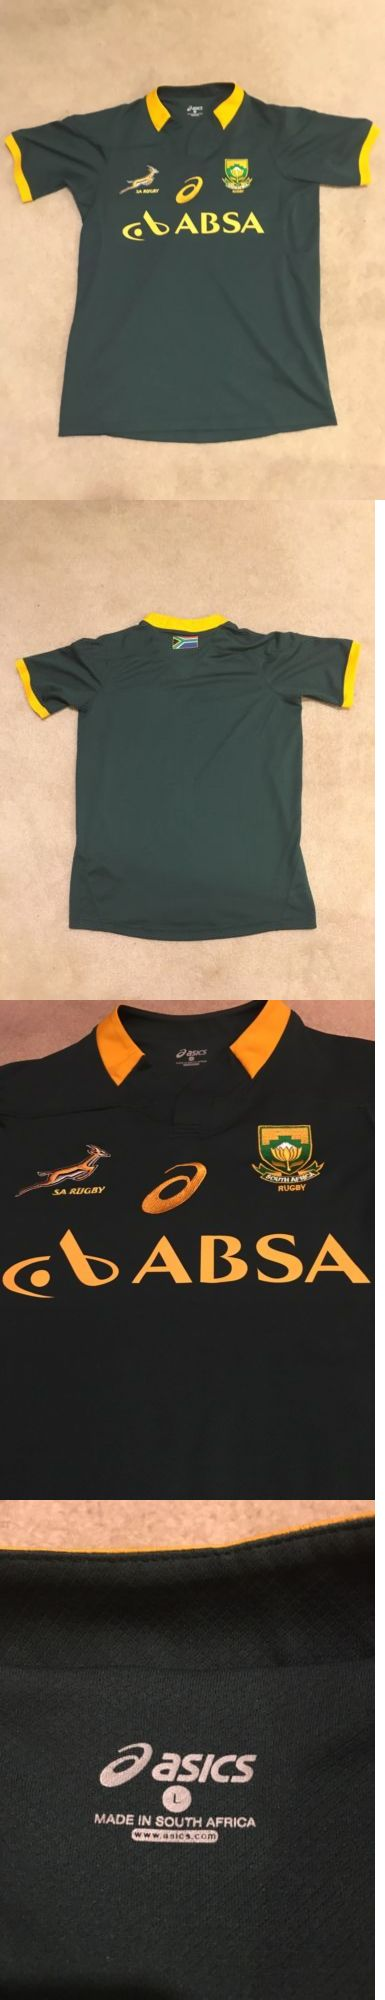 Rugby 21563: Asics South Africa Springboks 2014 2015 Rugby Jersey, Size L -> BUY IT NOW ONLY: $35.99 on eBay!